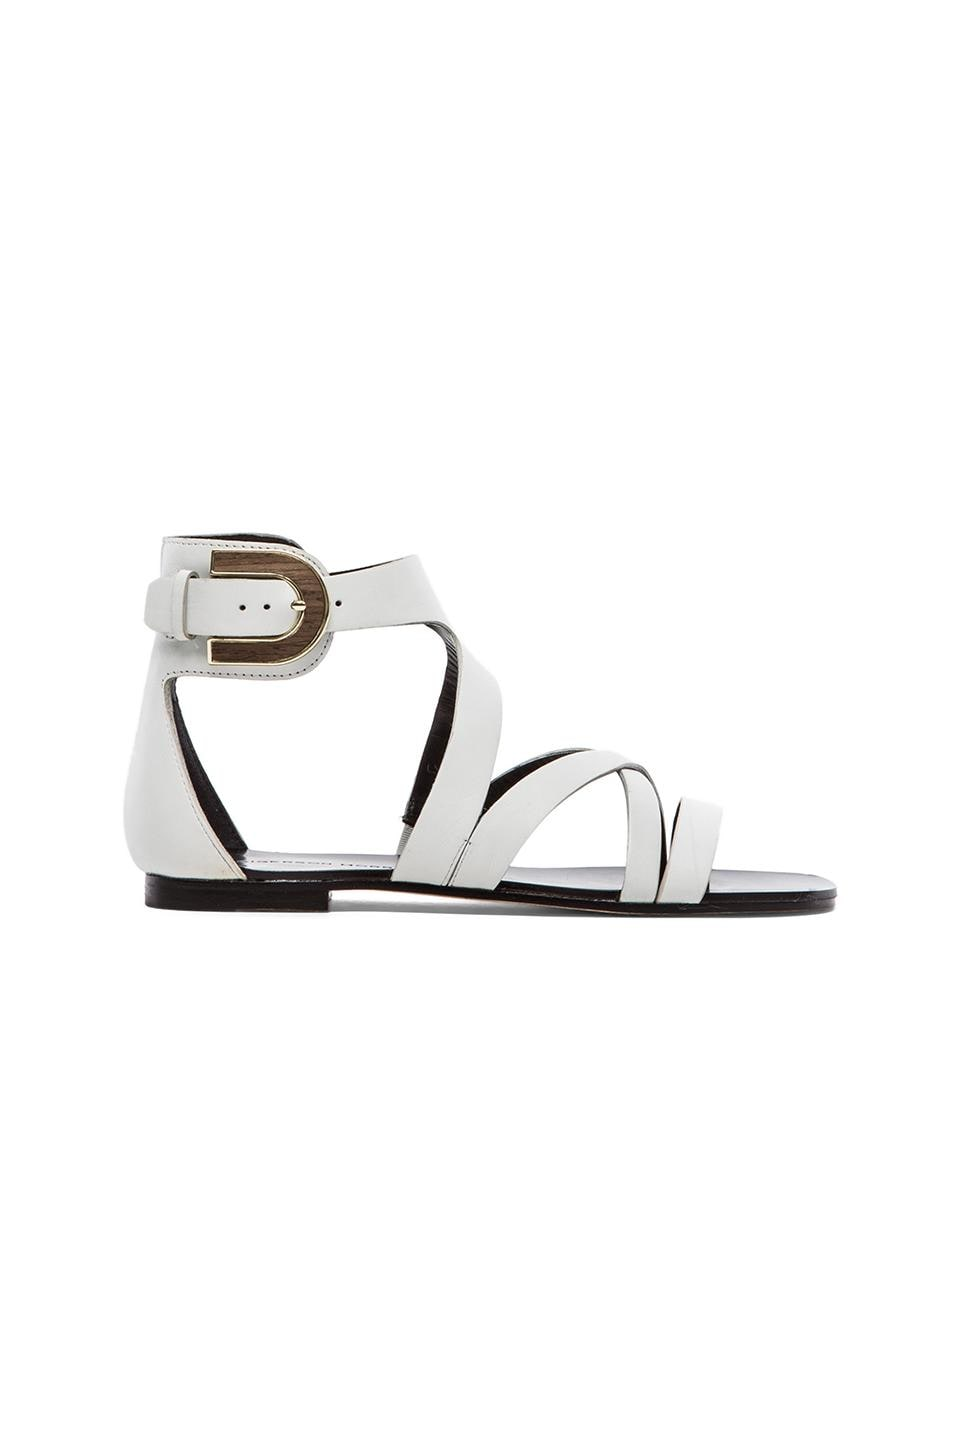 Sigerson Morrison Cadee Sandal in White